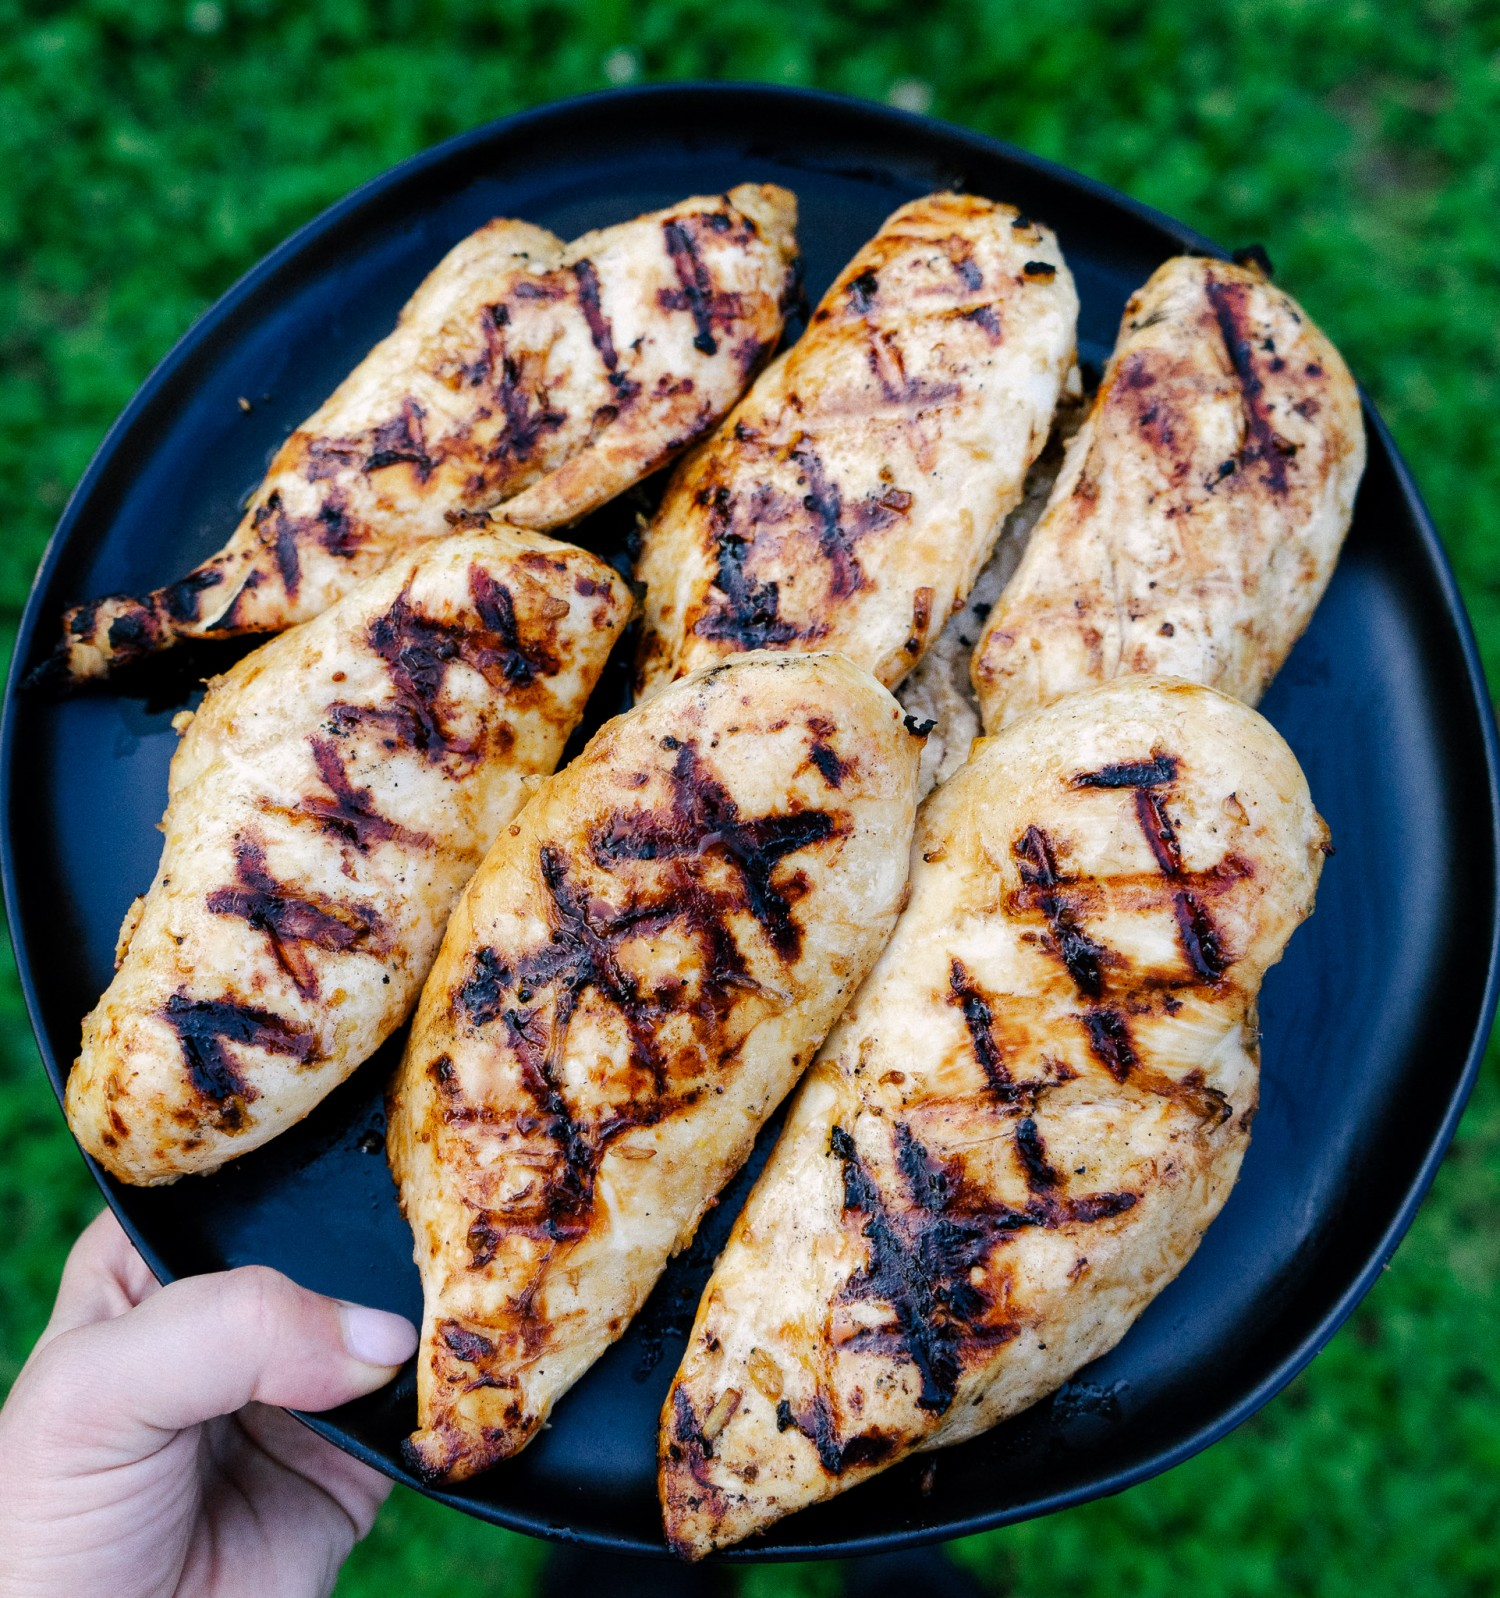 Above view of grilled ginger lime chicken on a serving plate outdoors